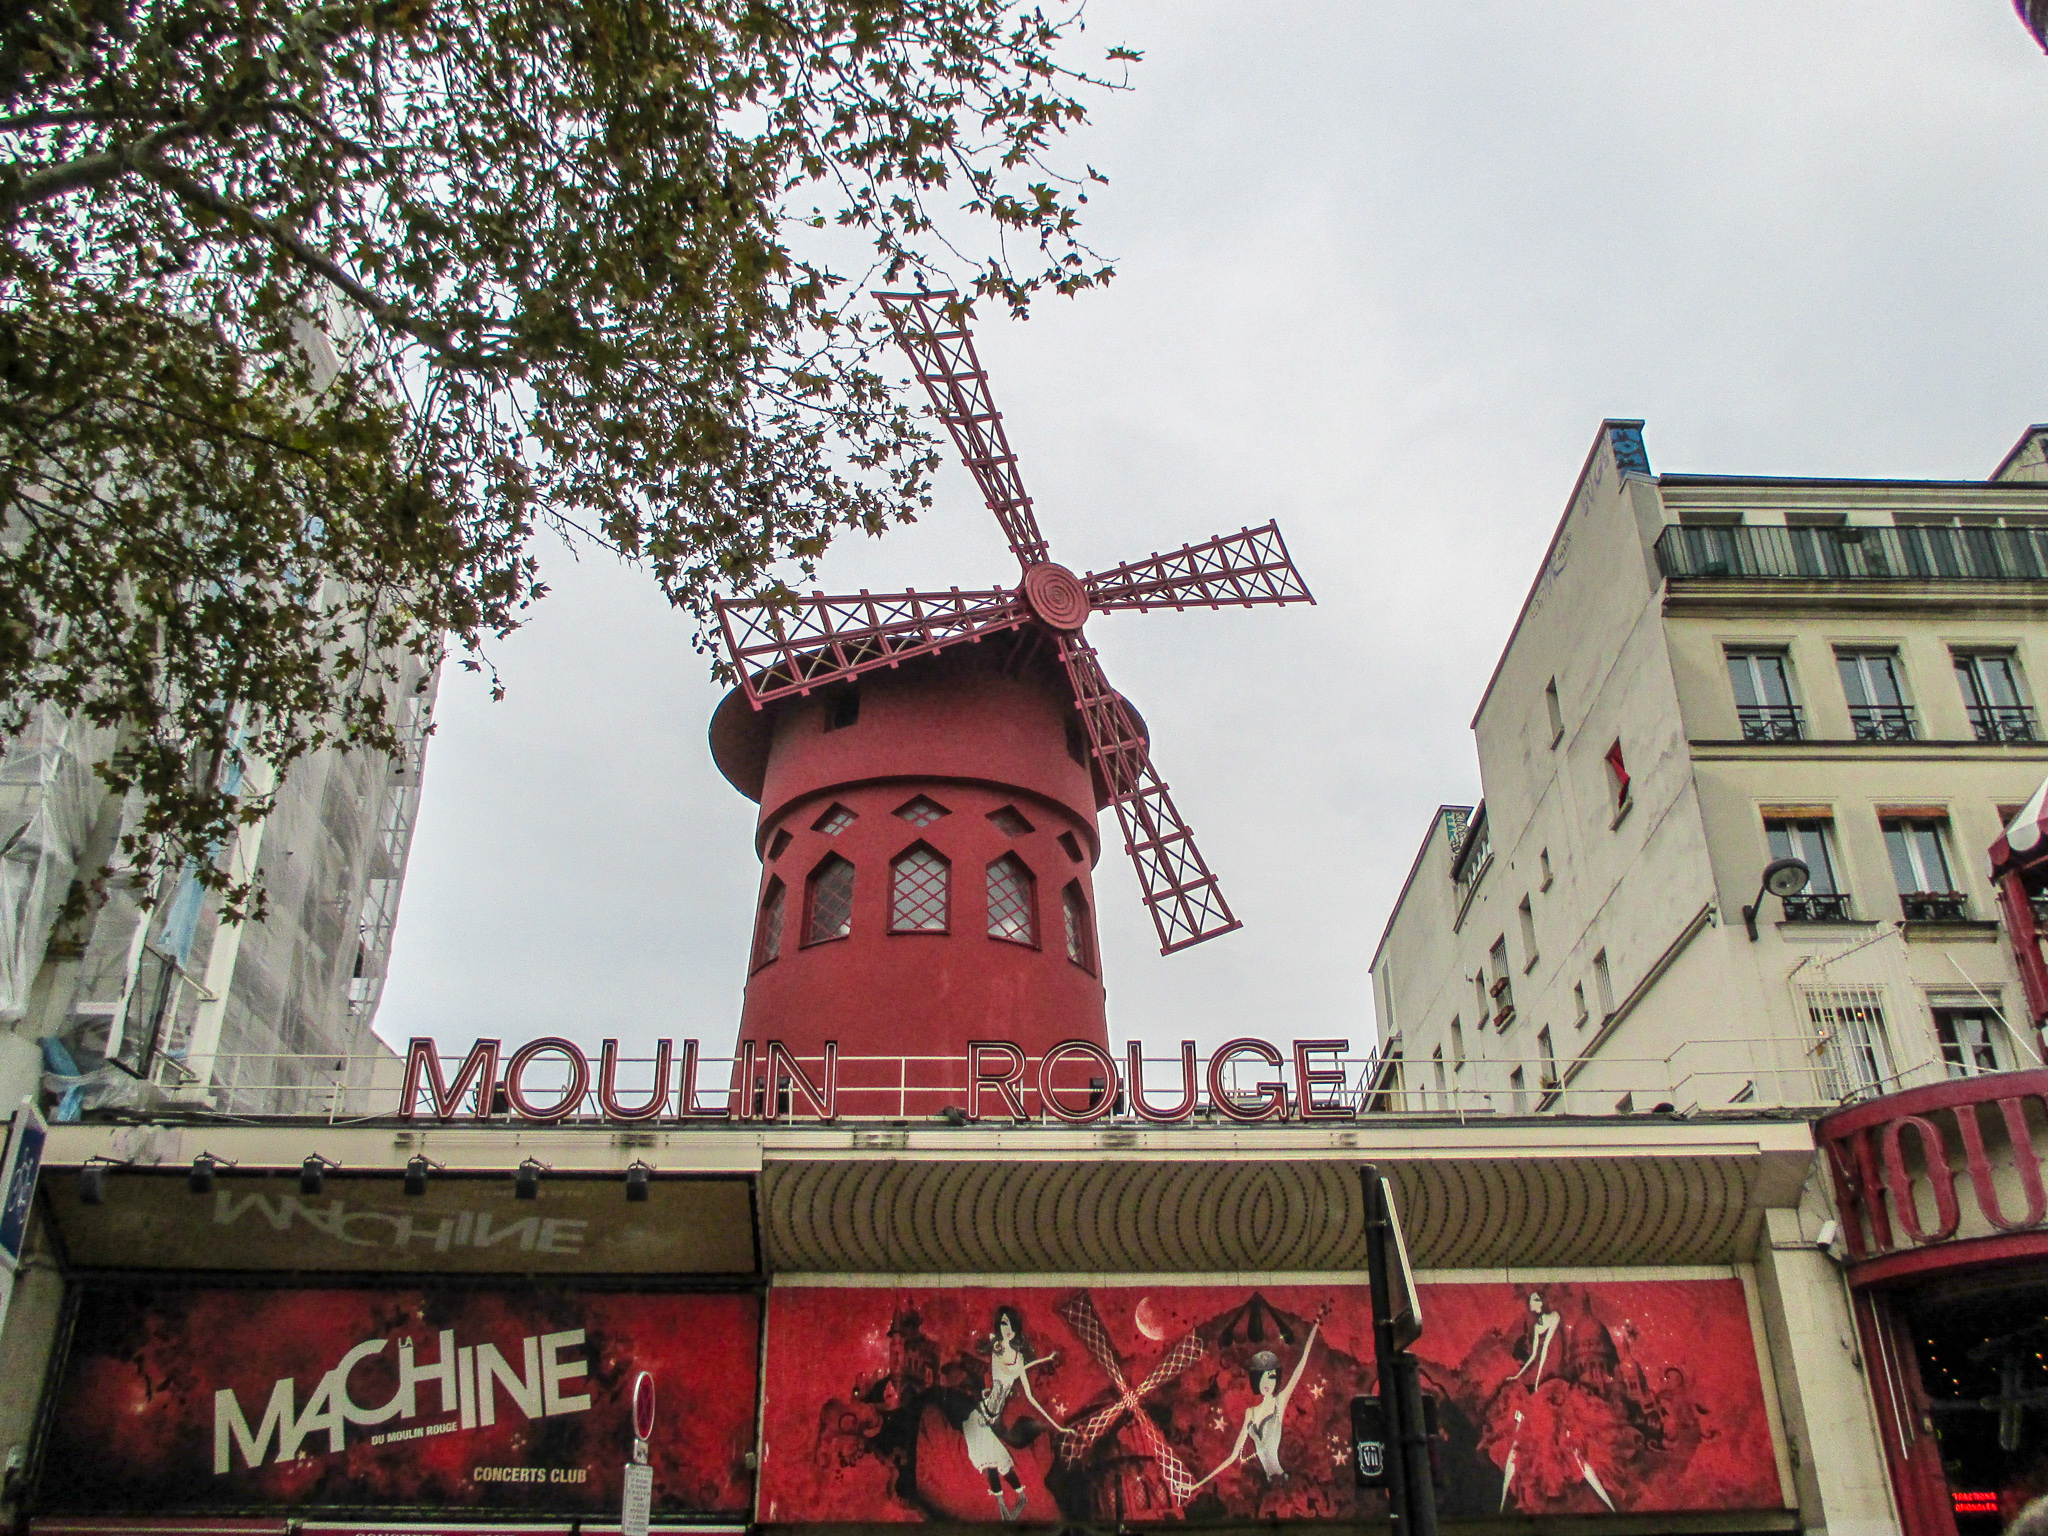 14 days in europe itinerary: the moulin rouge is a cool building but might be too pricey for backpackers